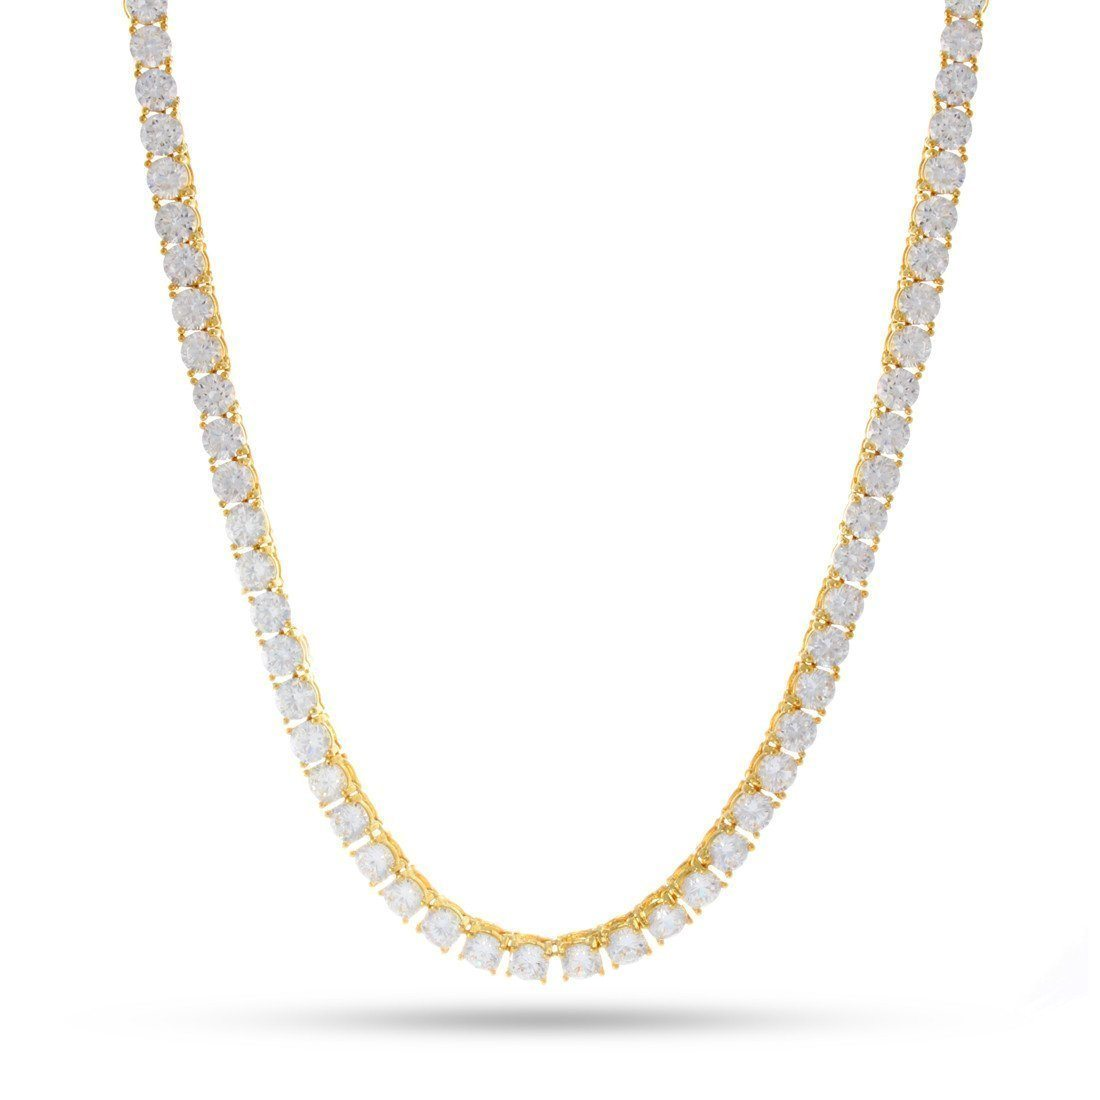 4mm, 14K Gold Single Row Tennis Chain